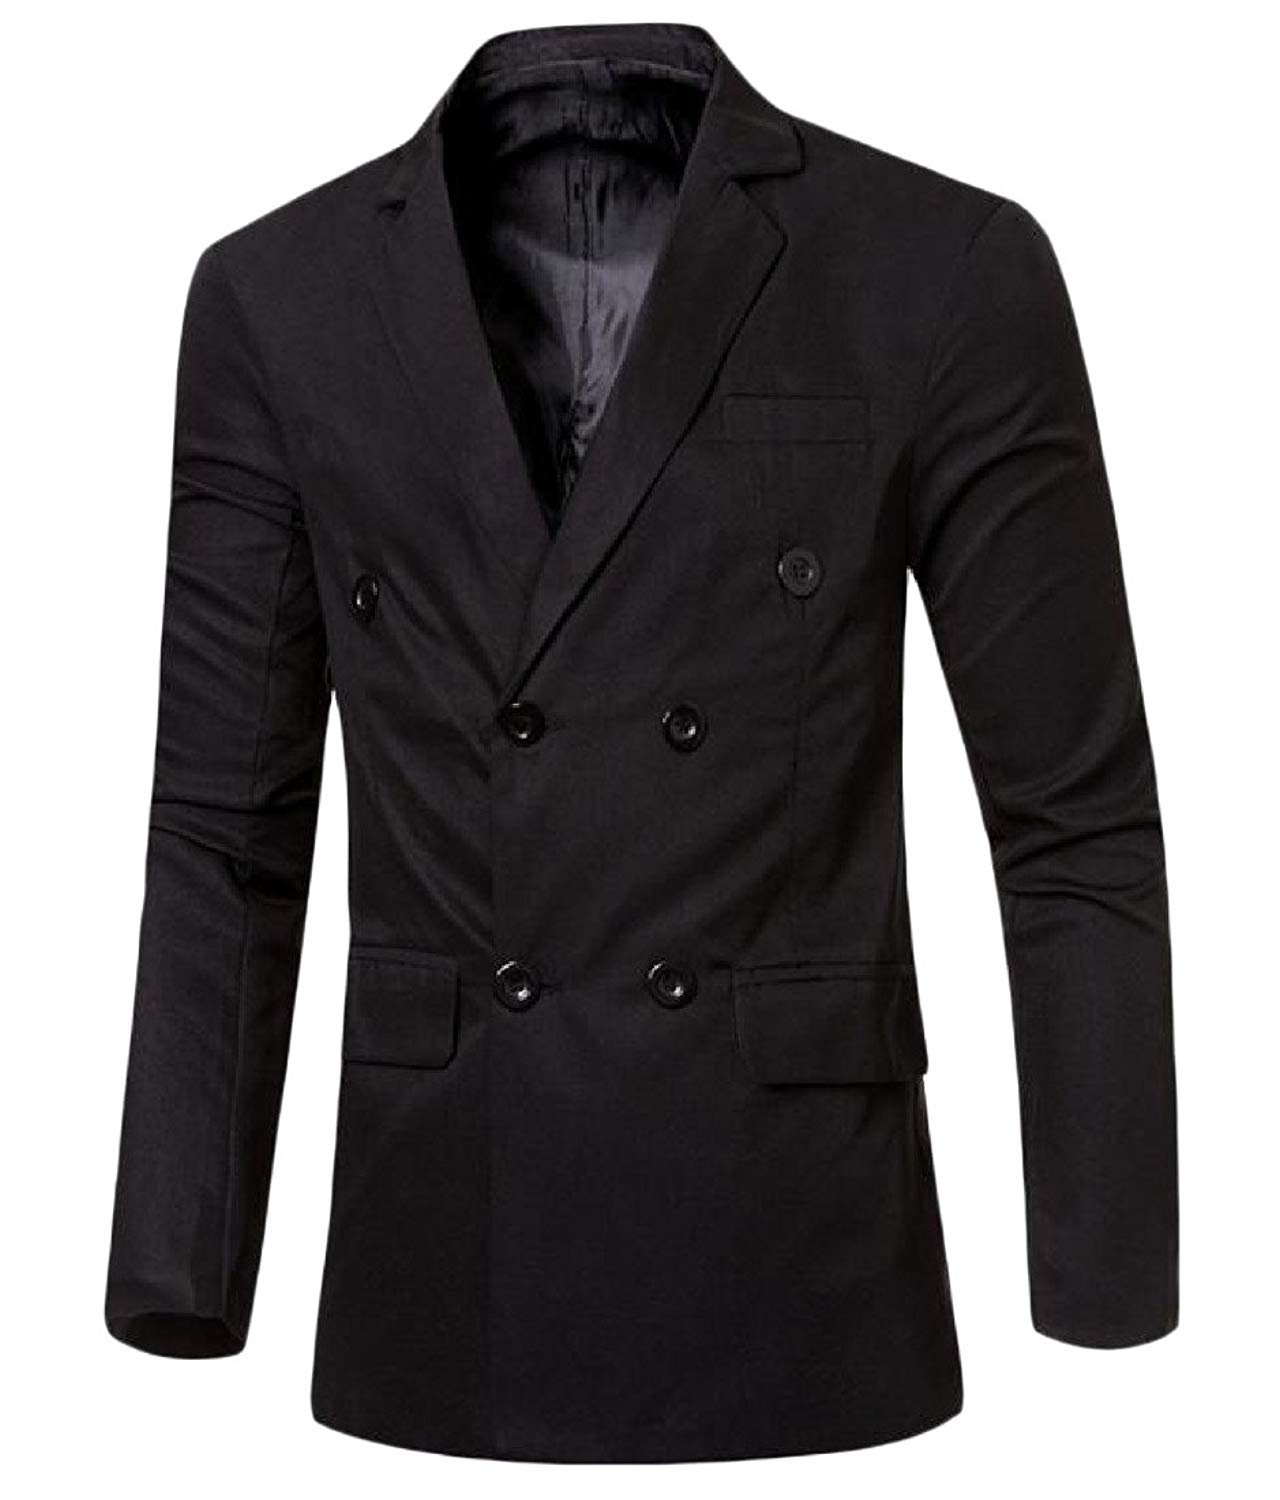 Comfy Mens Trim-Fit Solid Color Double-breasted Blazer Jacket Suit